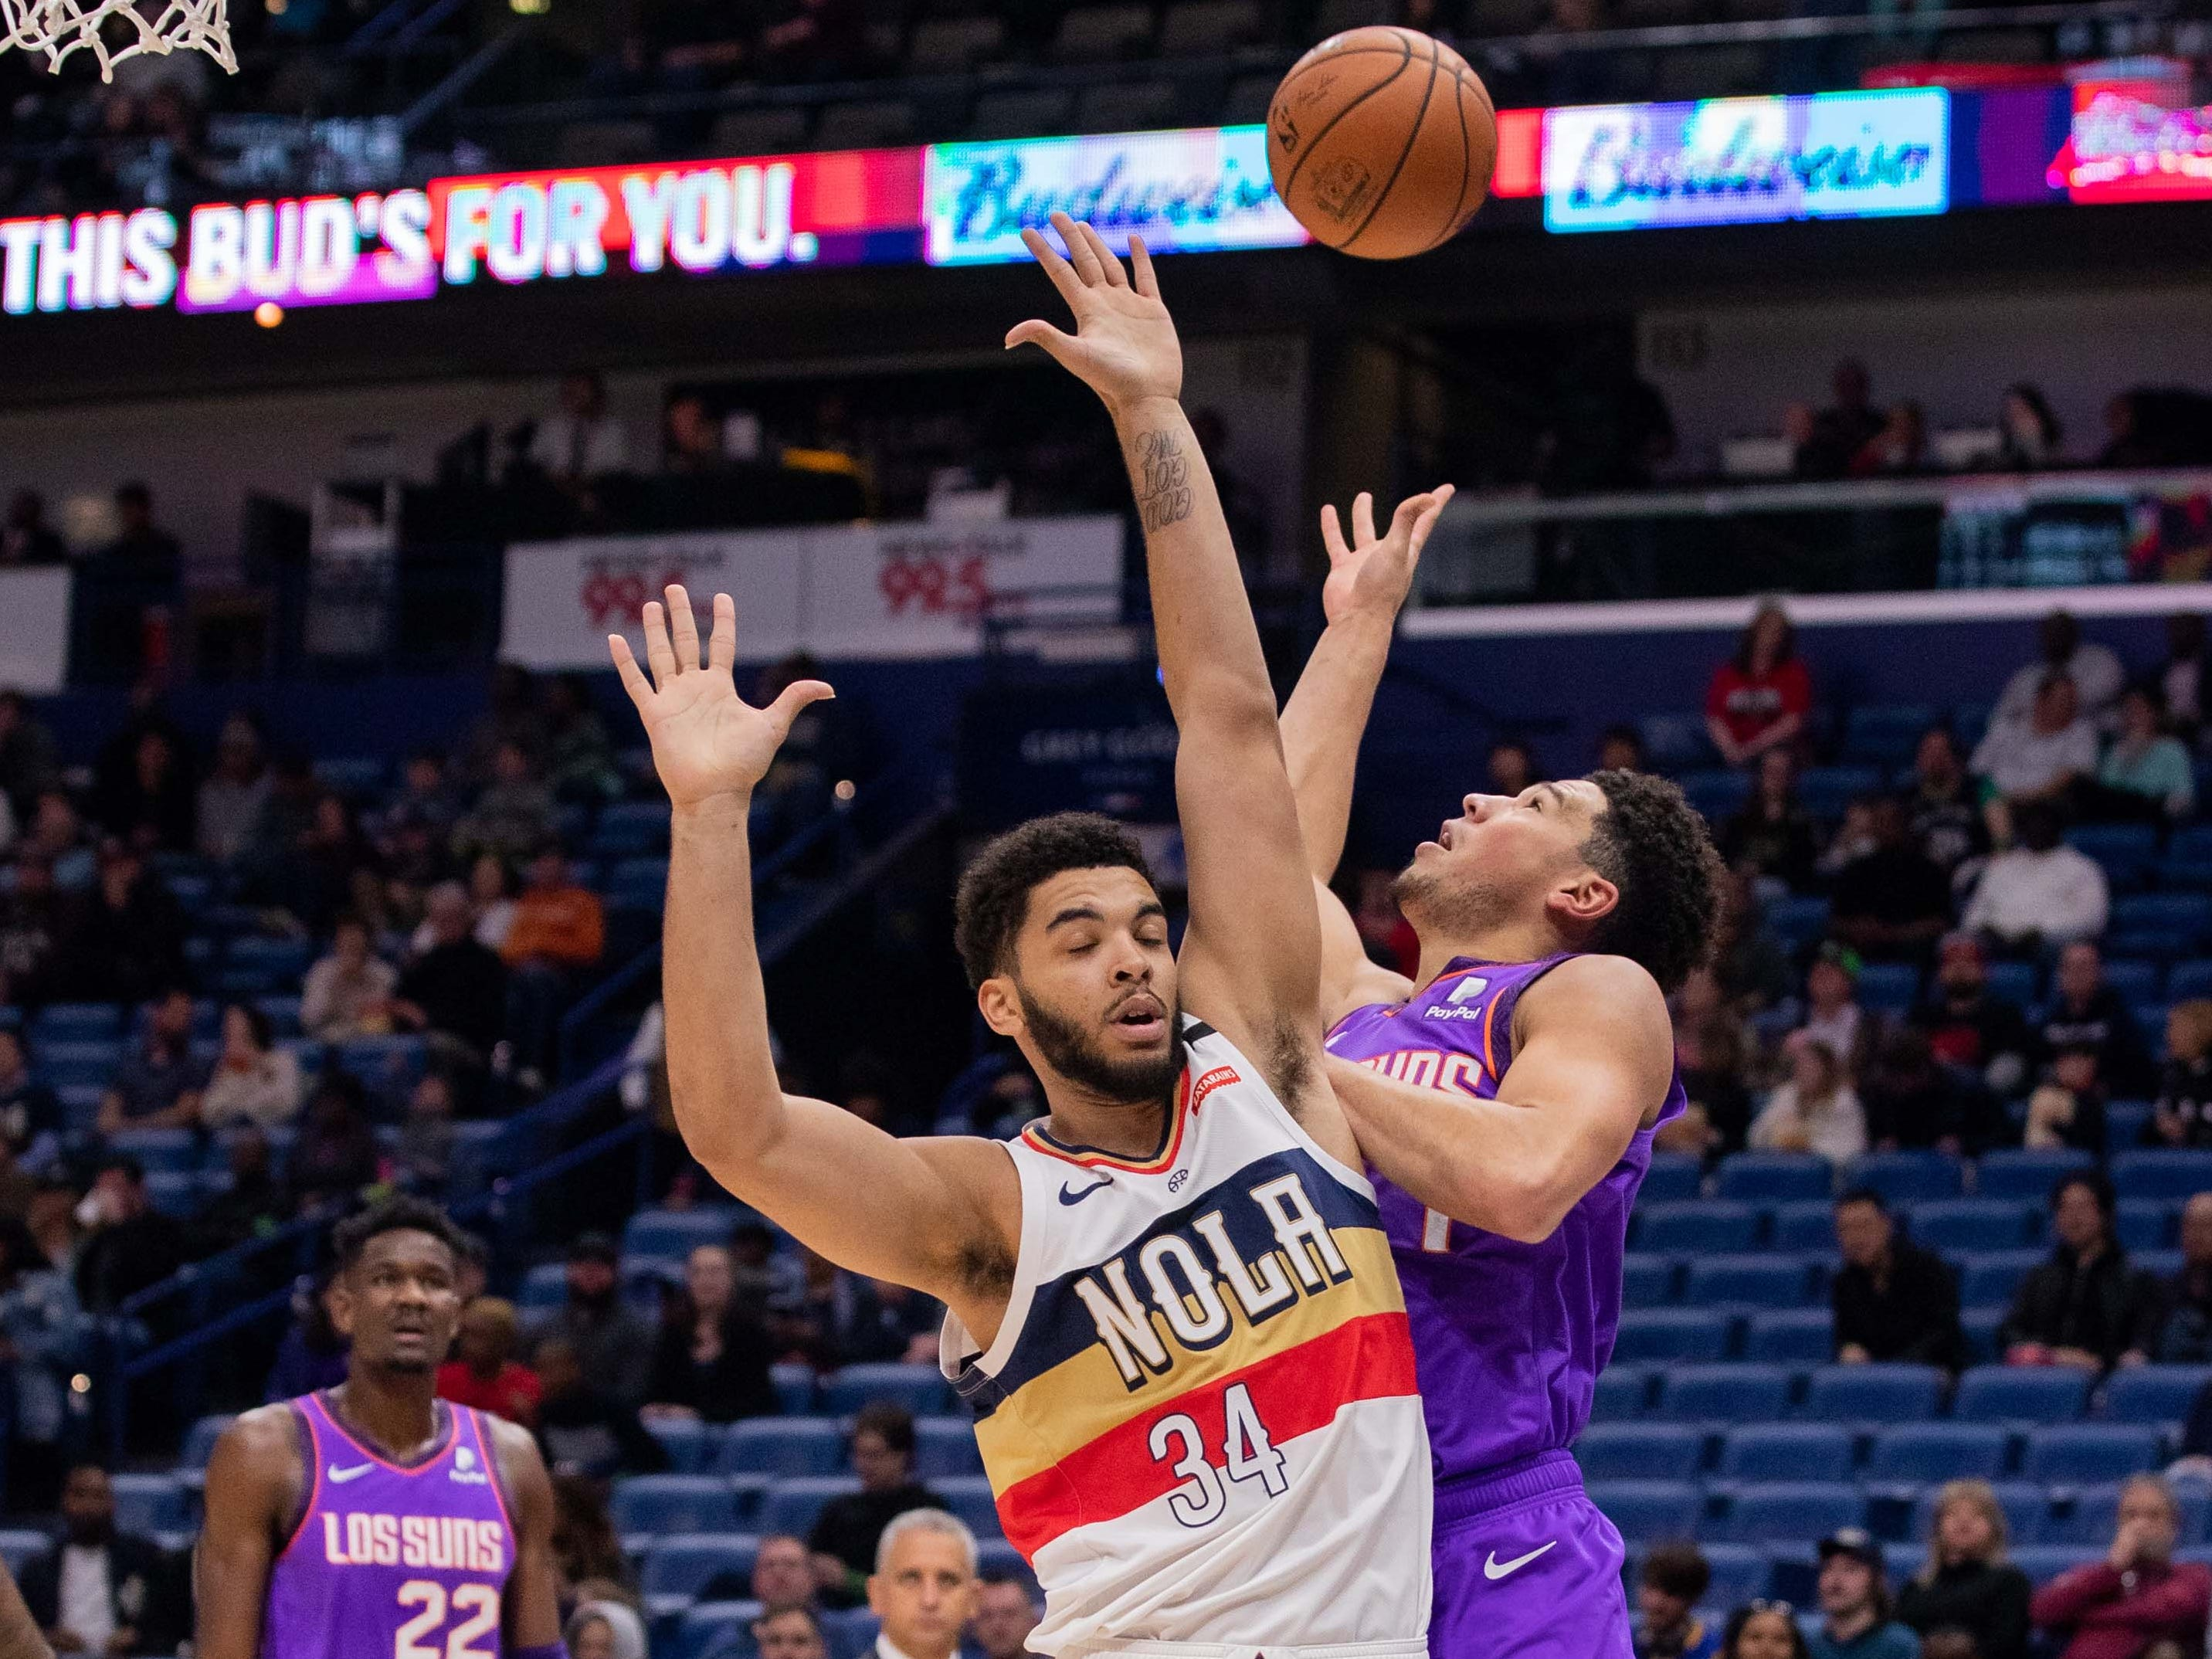 Mar 16, 2019; New Orleans, LA, USA; Phoenix Suns guard Devin Booker (1) drives to the basket against New Orleans Pelicans guard Kenrich Williams (34) during the first half at Smoothie King Center.